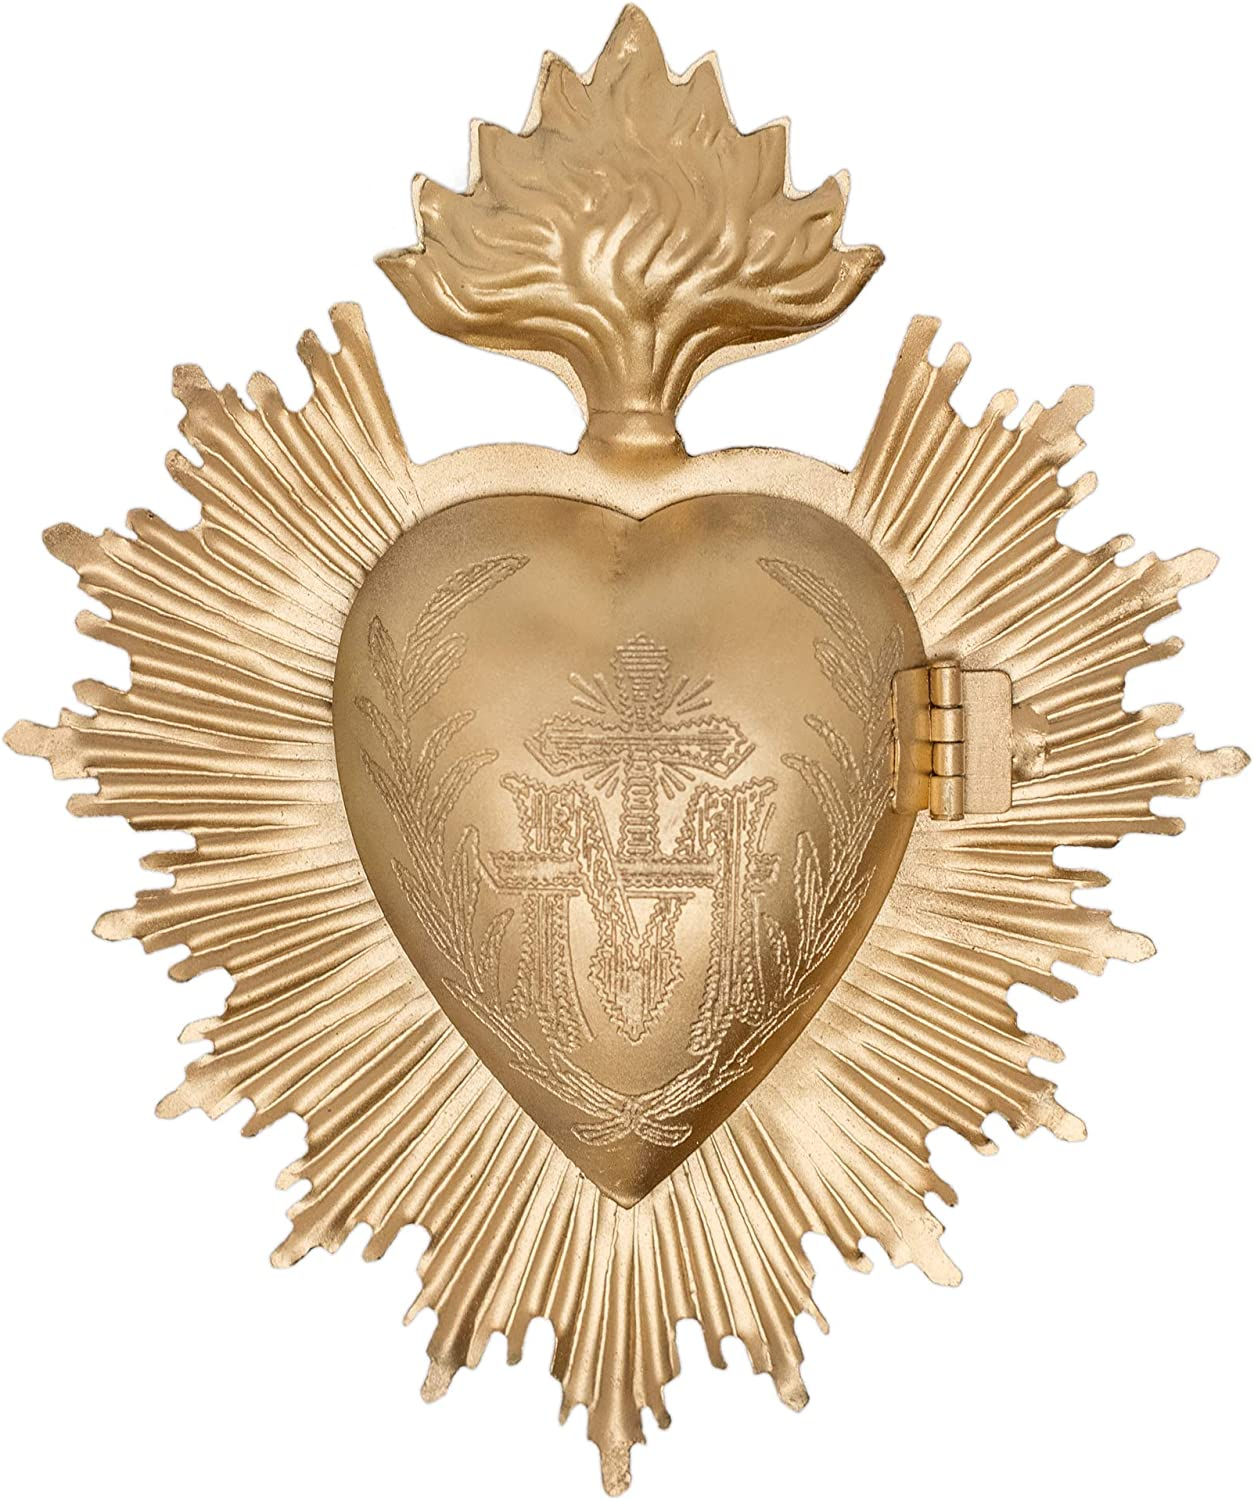 Sacred milagro heart box by Queen of Crowns